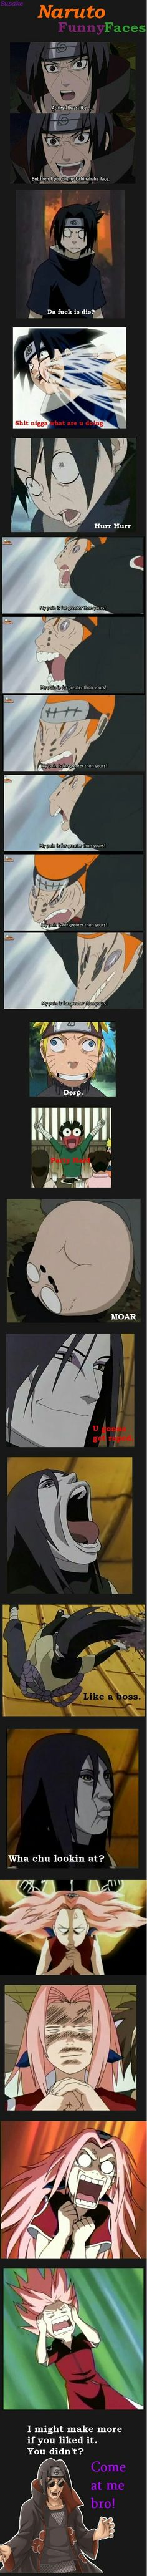 Naruto# funny faces#